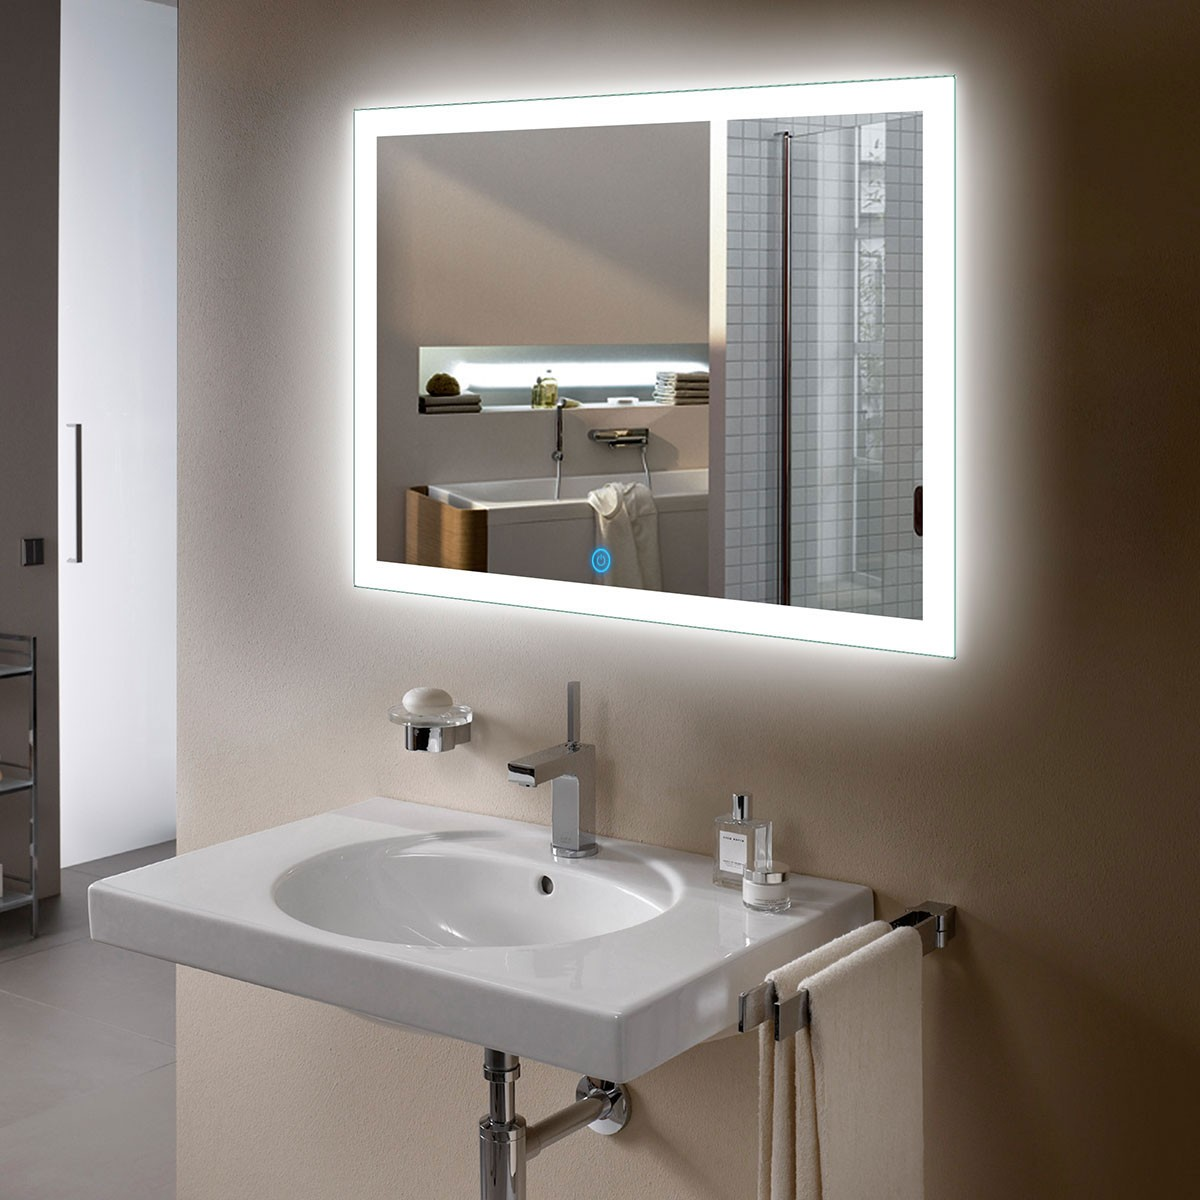 36 x 28 In Horizontal LED Bathroom Mirror, Touch Button (DK-OD-N031-I)